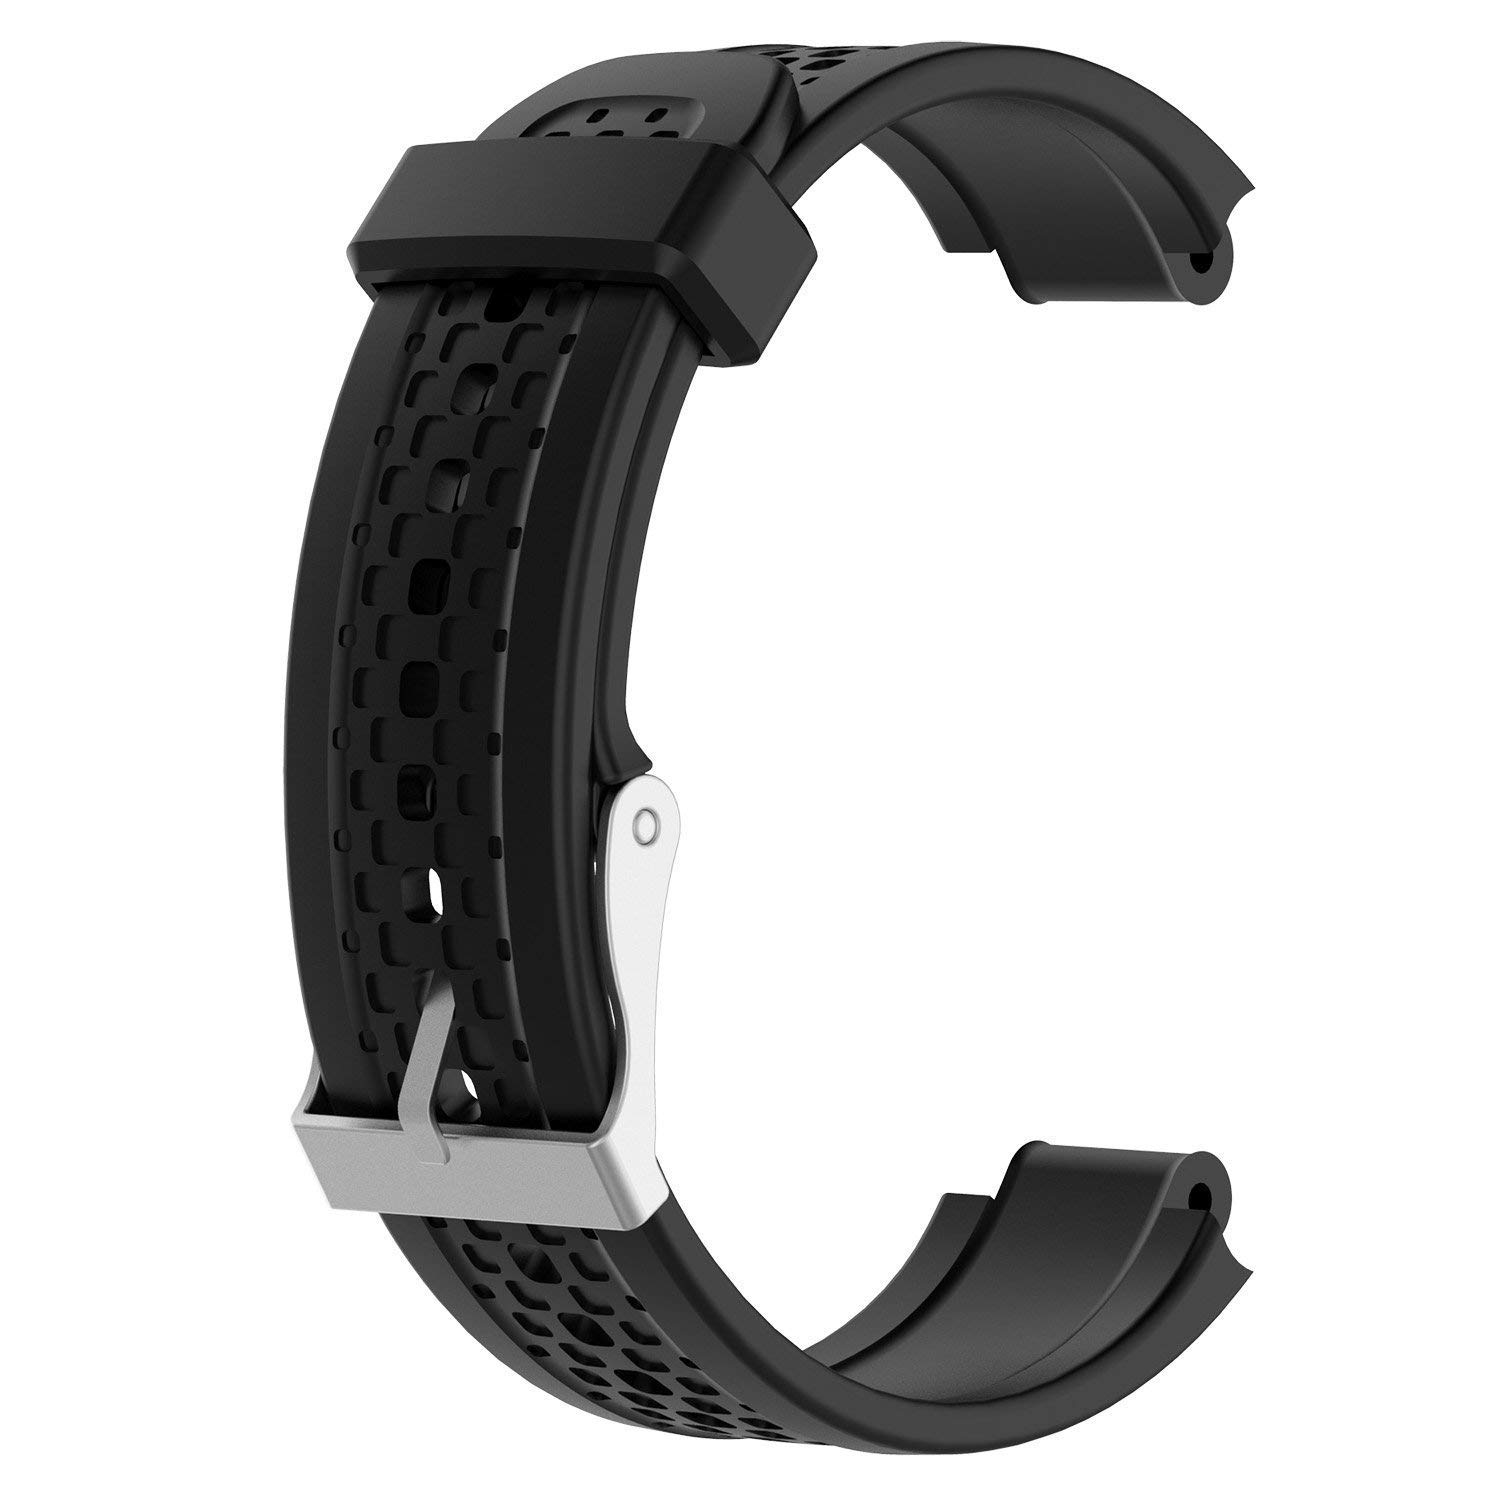 fddeb7d06e6e1a Amazon.com: Replacement Band for Garmin Forerunner 25 GPS Running Watch  Wristband Fitness Tracker for Smartphone(Female Strap) with Adapter Tools:  Cell ...